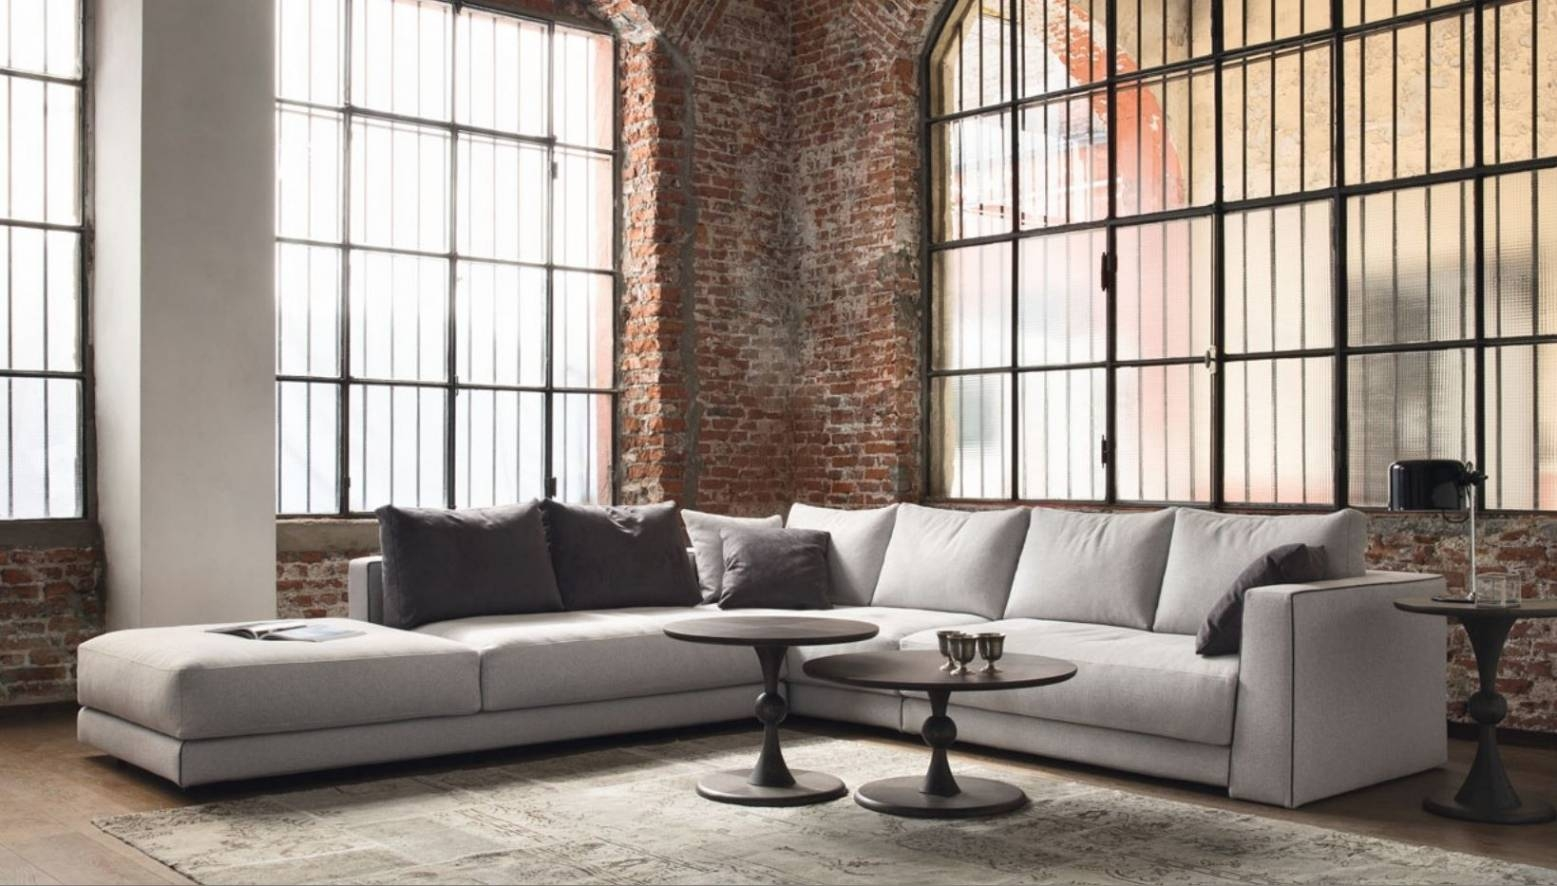 Luxurious Sectional Sofas Living Room Luxury Sectional Sofas Houzz throughout Expensive Sectional Sofas (Image 17 of 30)